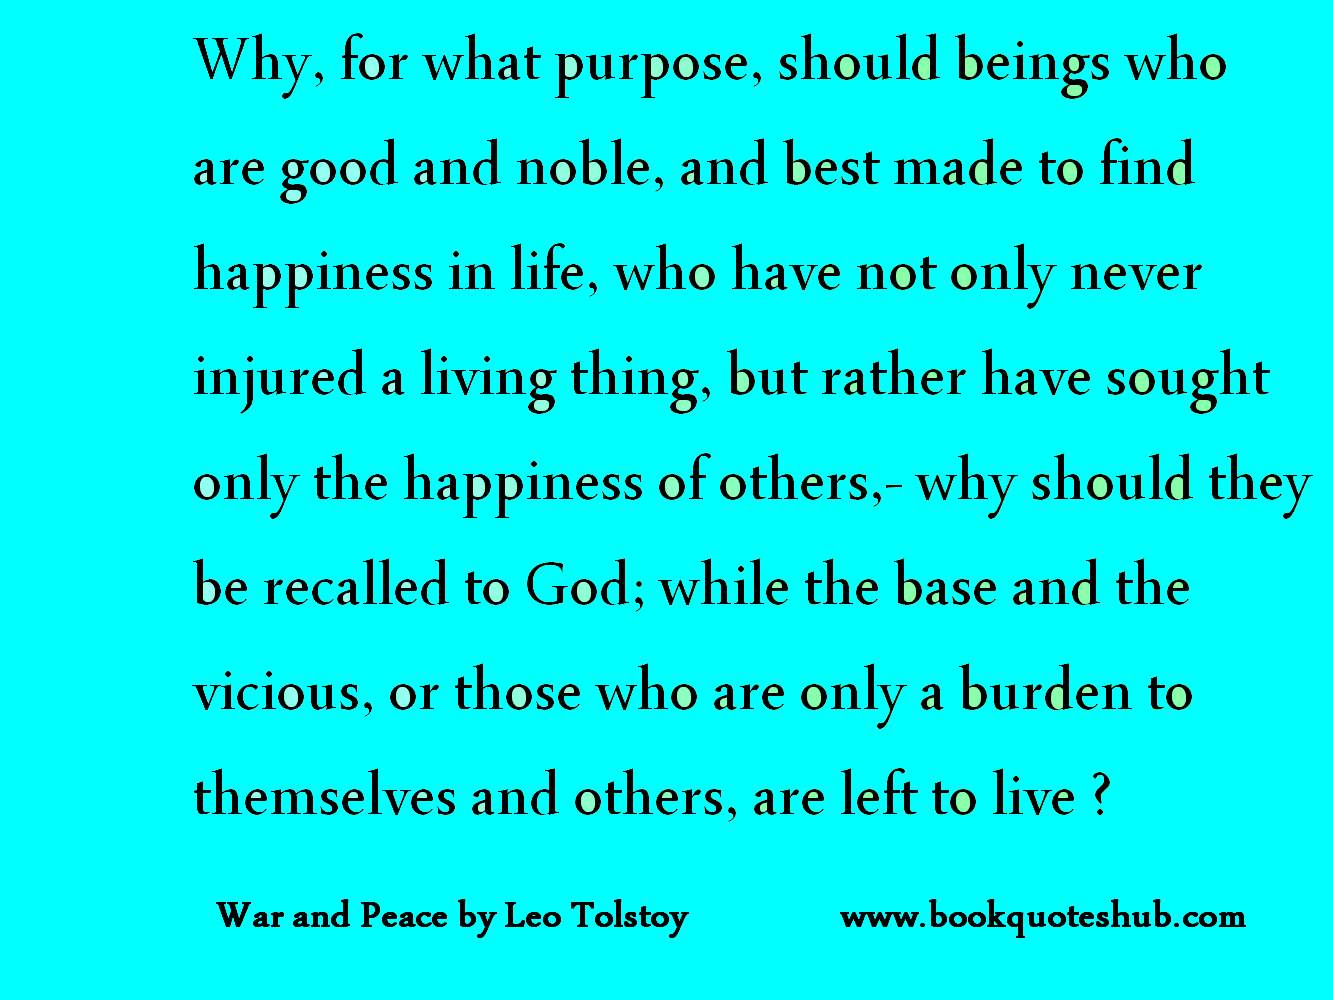 War And Peace Book Quotes Hub Page 3